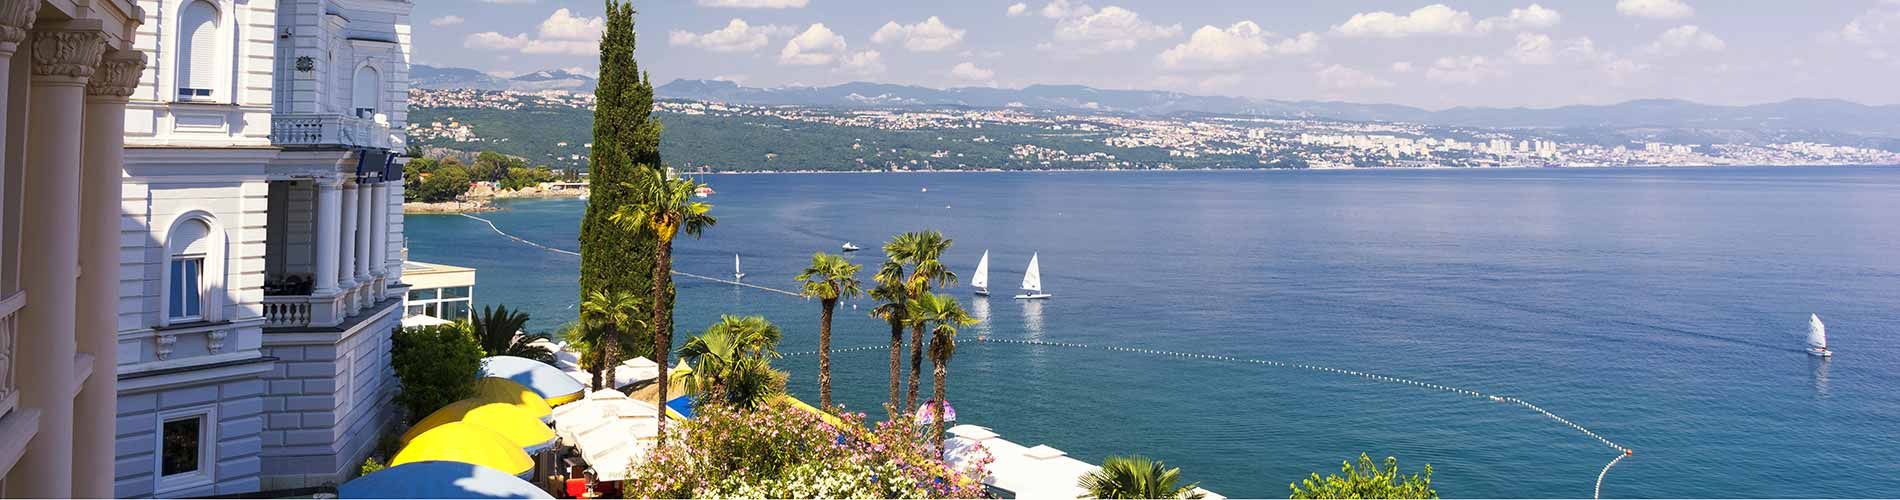 View of coastline Opatija Croatia.jpg